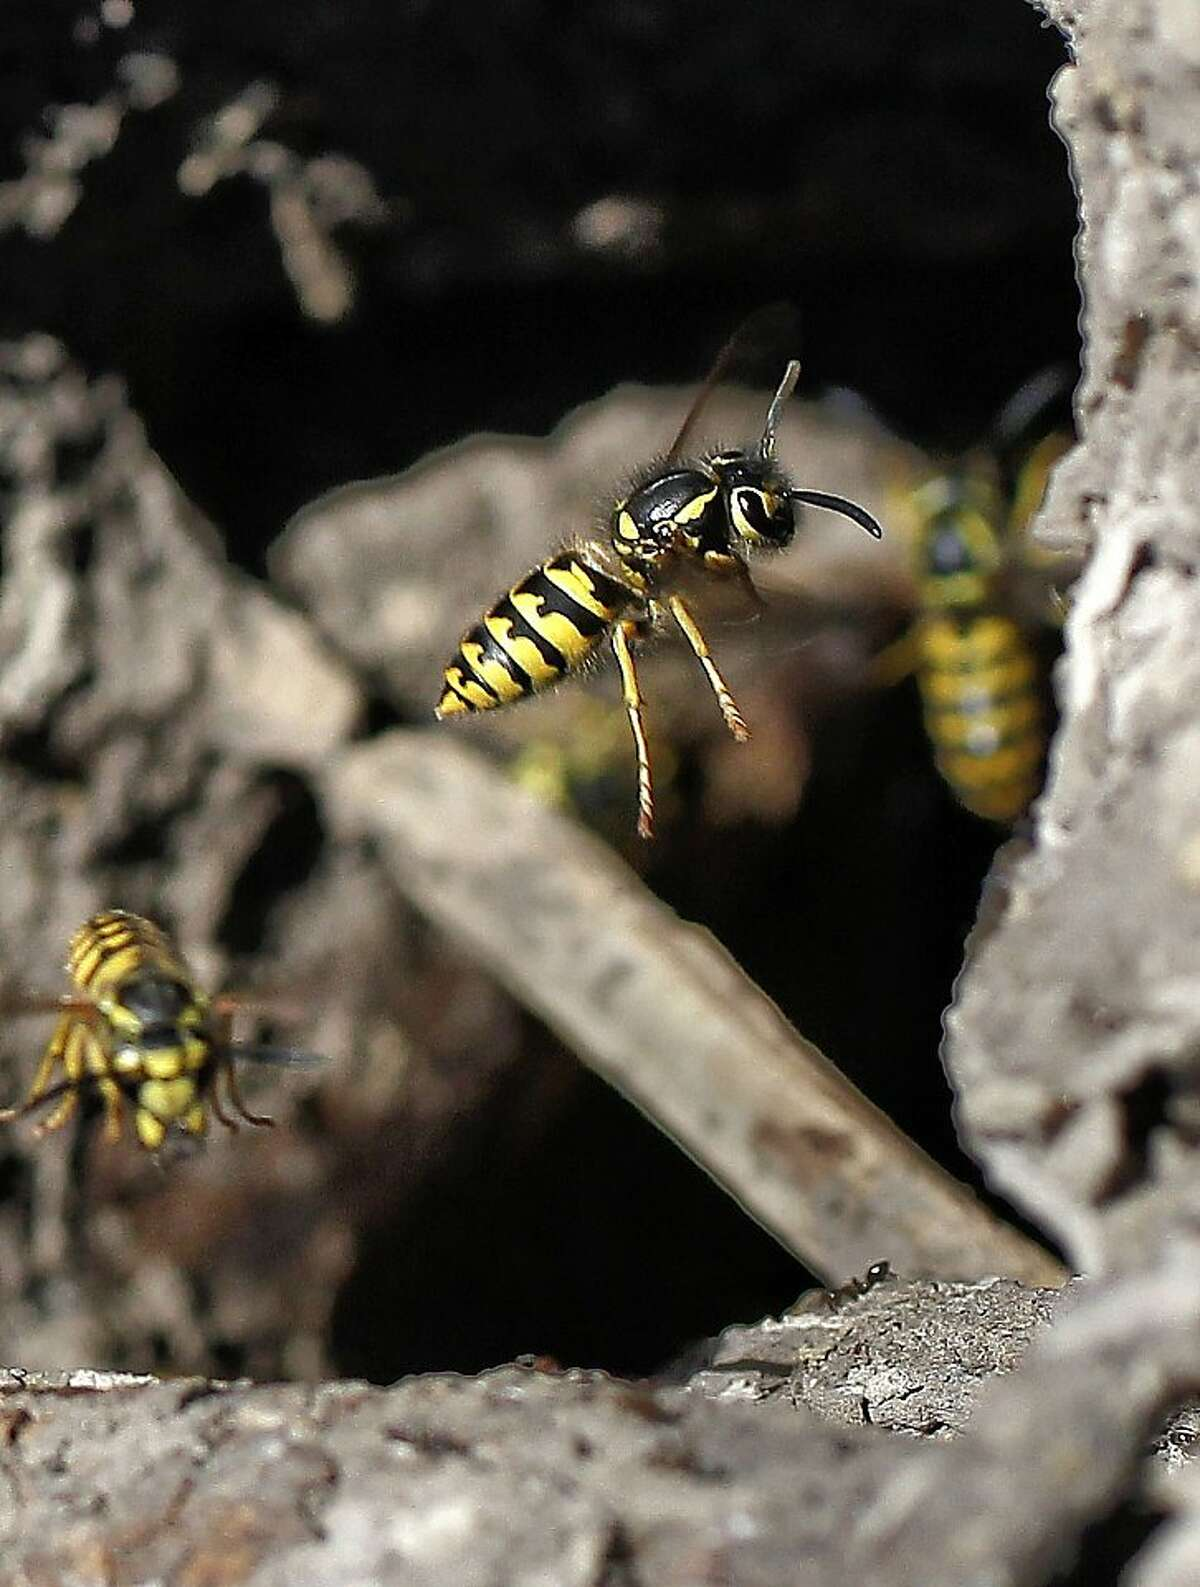 Western Yellowjackets enter a nest found on the grounds of the UC Berkeley Field Station in Richmond, Calif. on Thursday Sept. 5, 2013, at the base of a Eucalyptus tree.